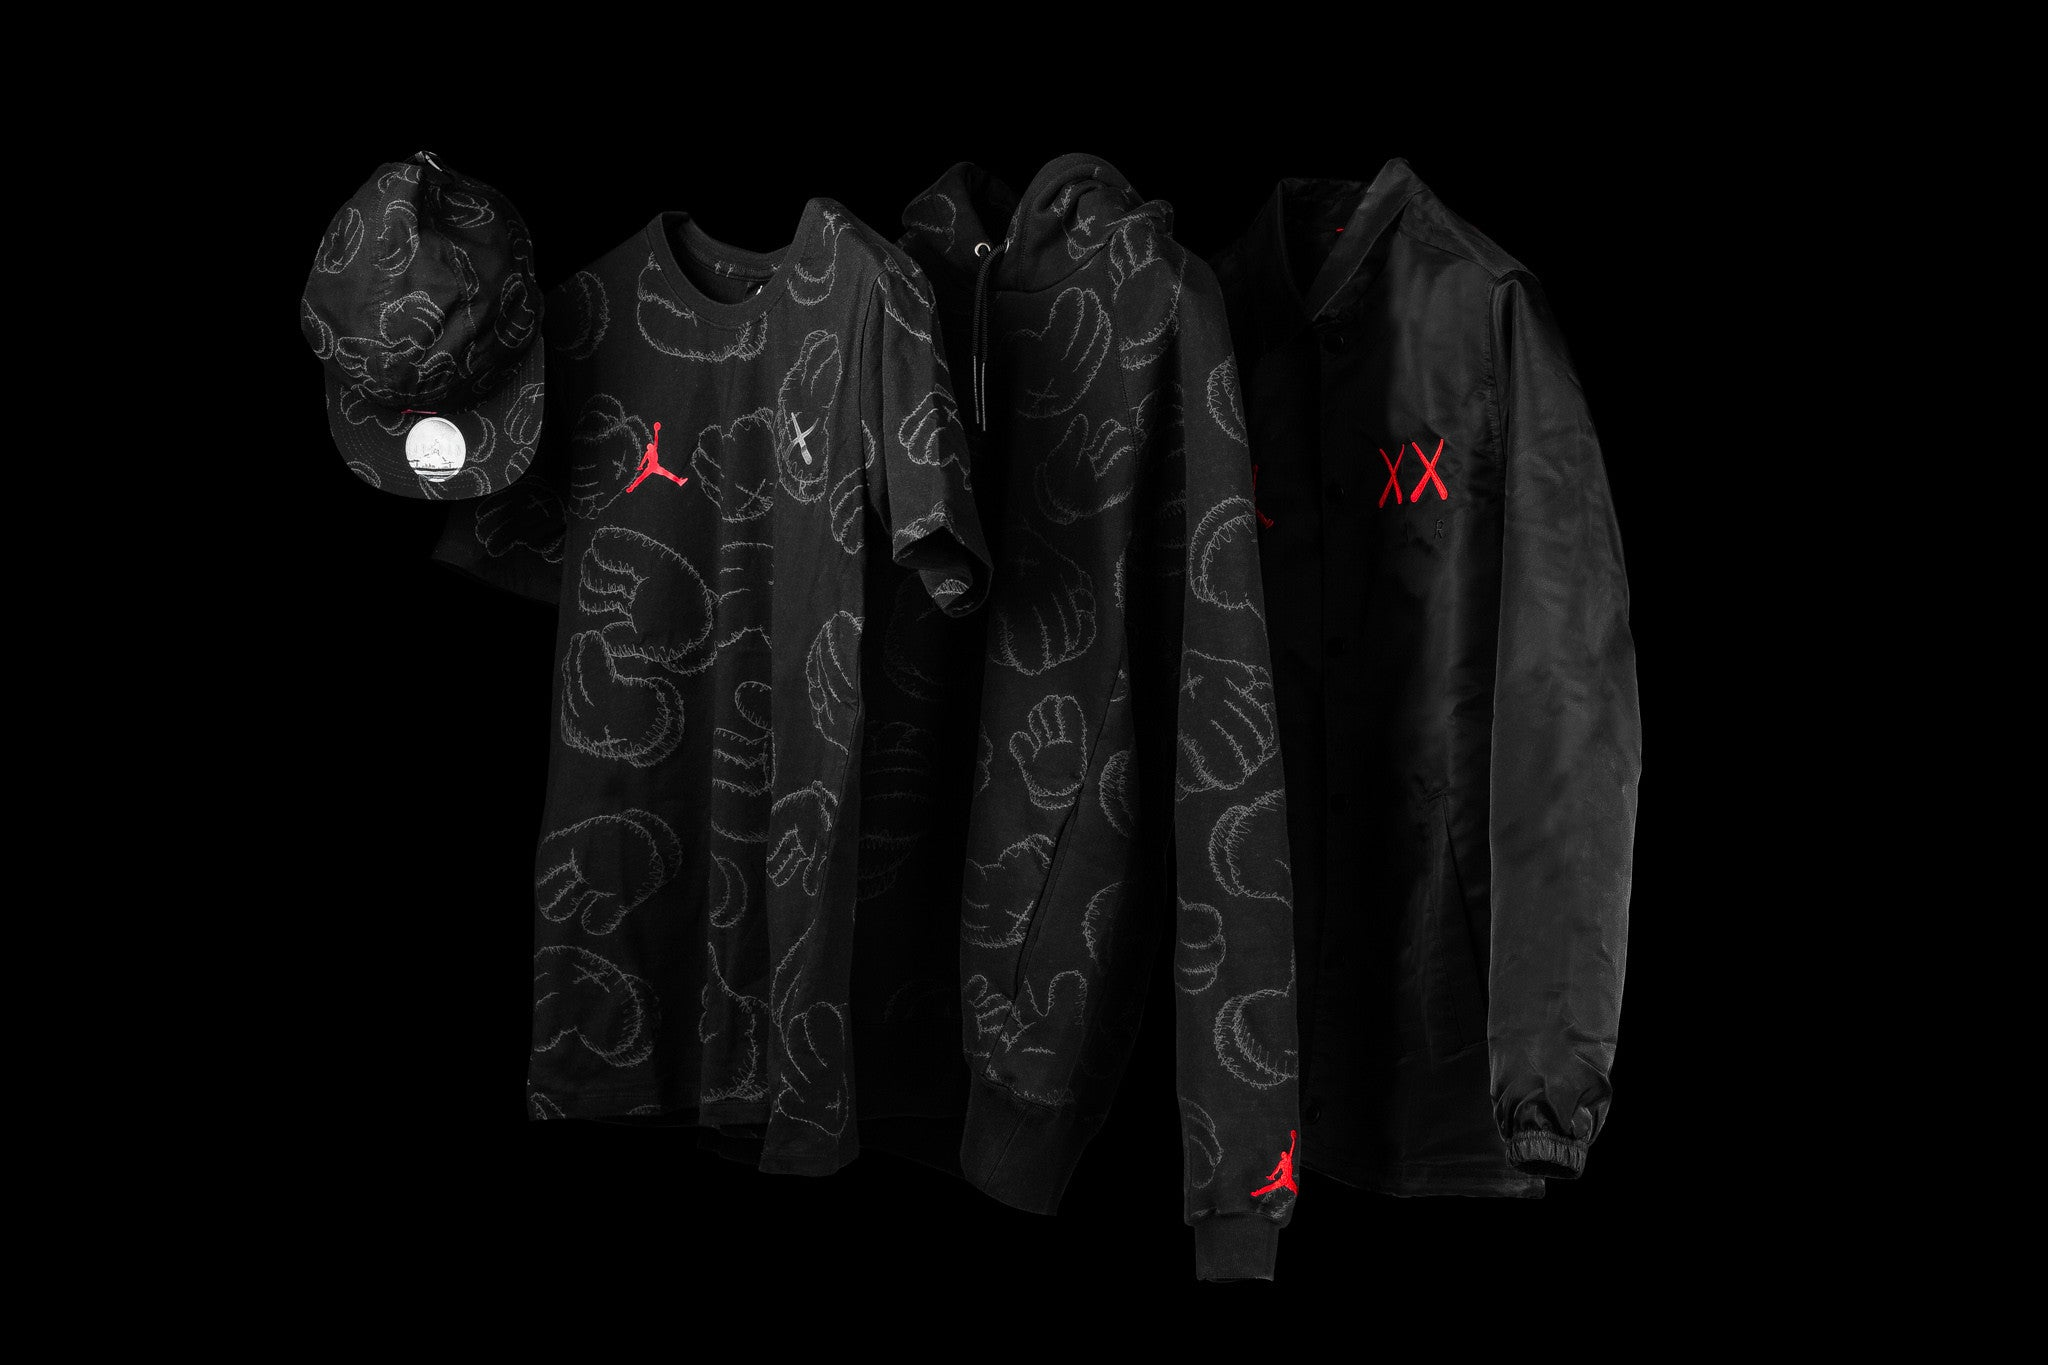 KAWS x Jordan Apparel 04.16.17 In Store Only at Yorkville Location ... 738c28be8e